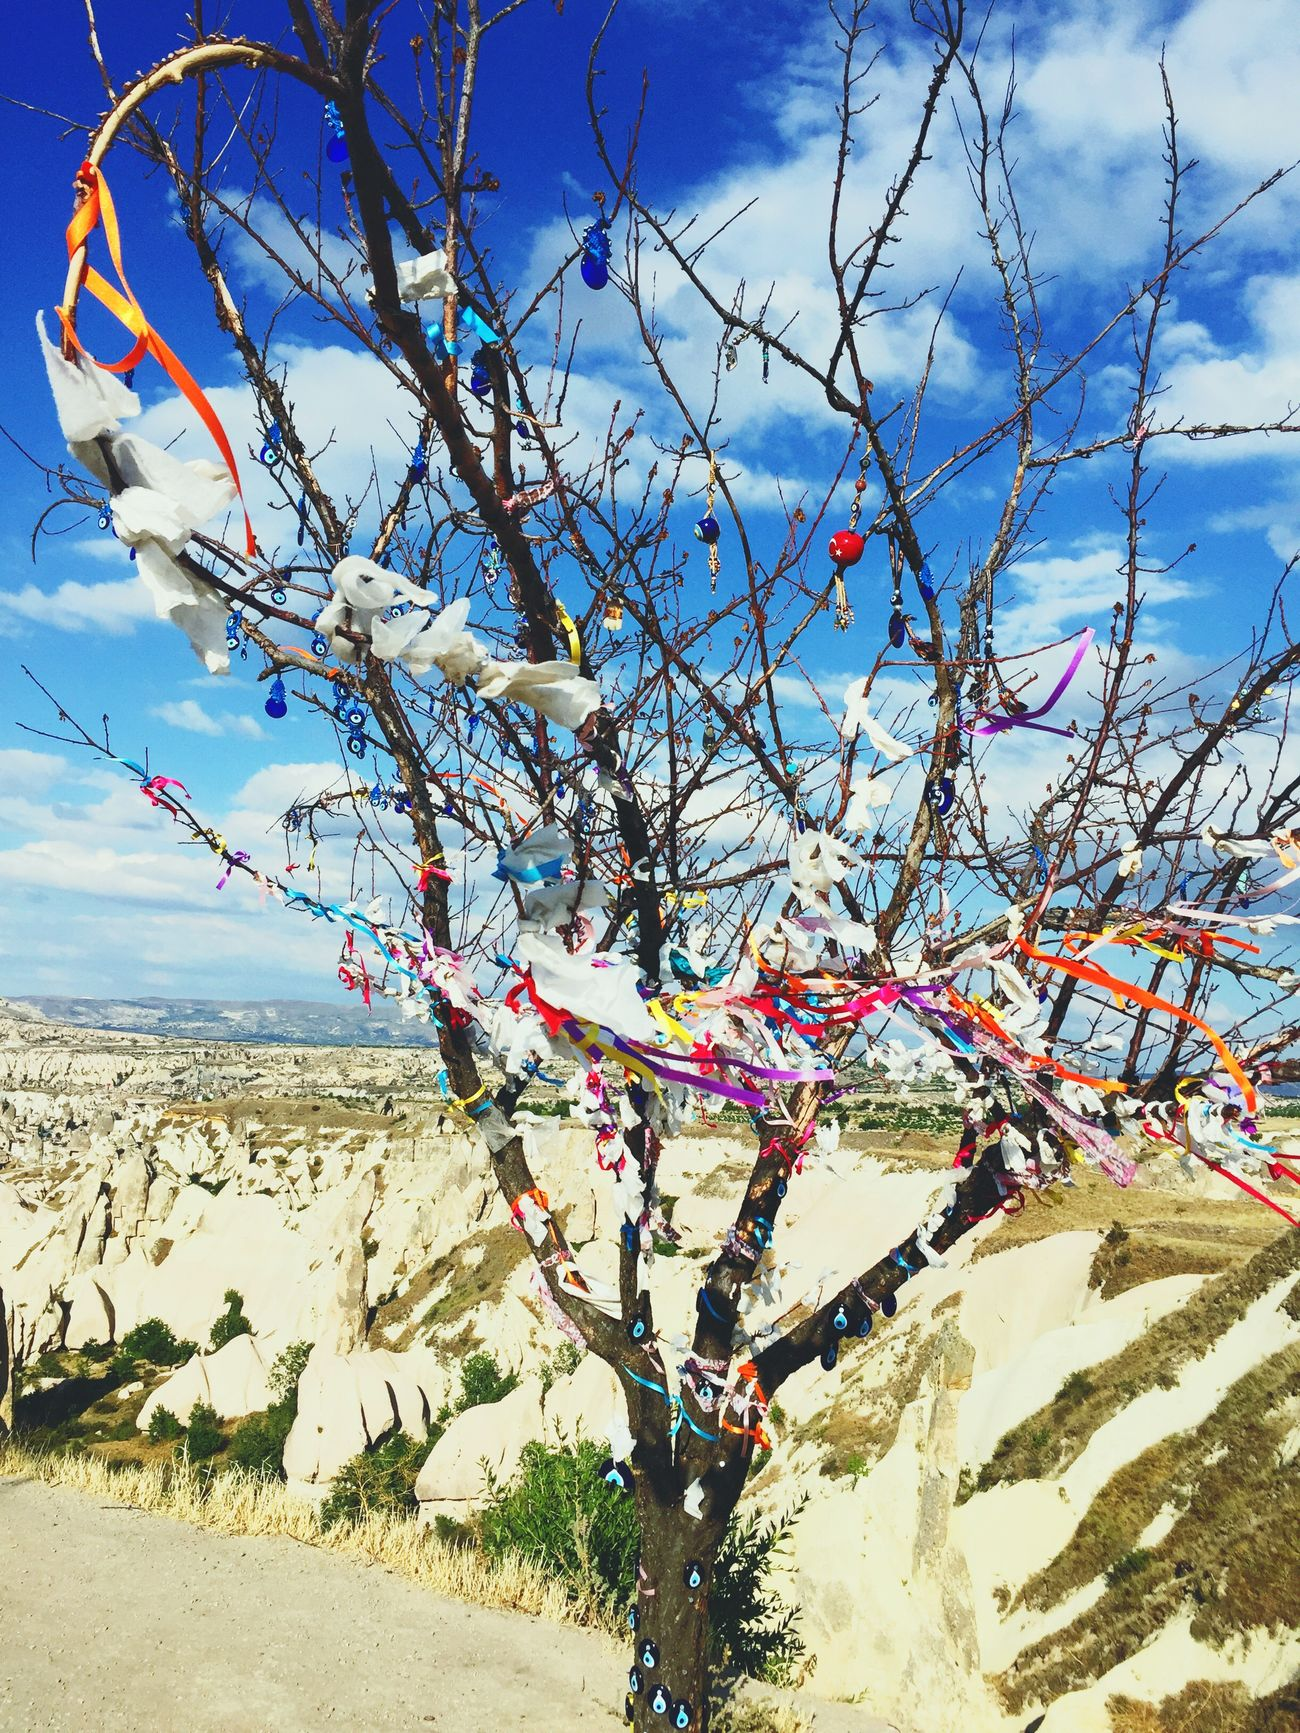 The Past Picture Nature Beauty In Nature NevşehirKapadokya Nevşehir ürgüp Cappadocia Hot Air Ballons Best Of EyeEm EyeEm Cappadocia/Turkey Cappadociafanpage Cappadocia Turkey History Wish Tree Wish Tranquility Tranquil Scene Nature Tourism